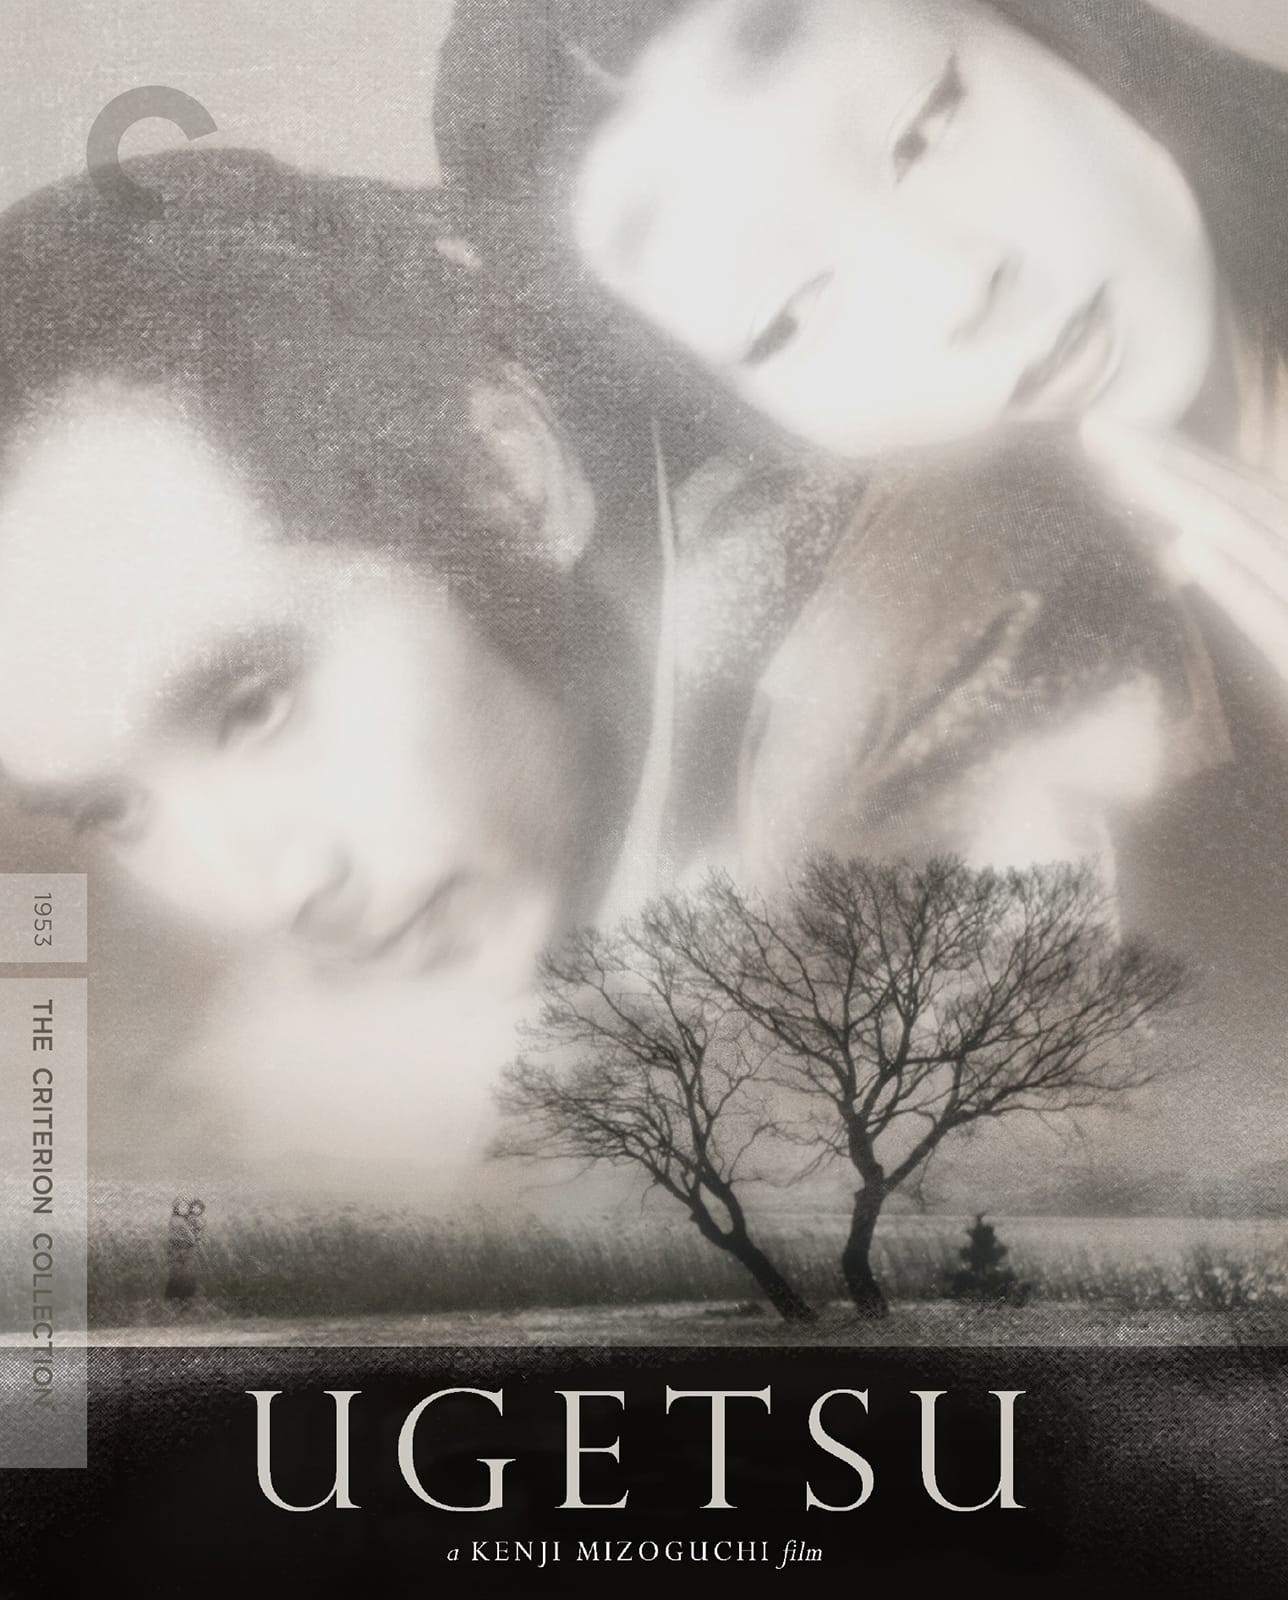 Ugetsu 1953 The Criterion Collection